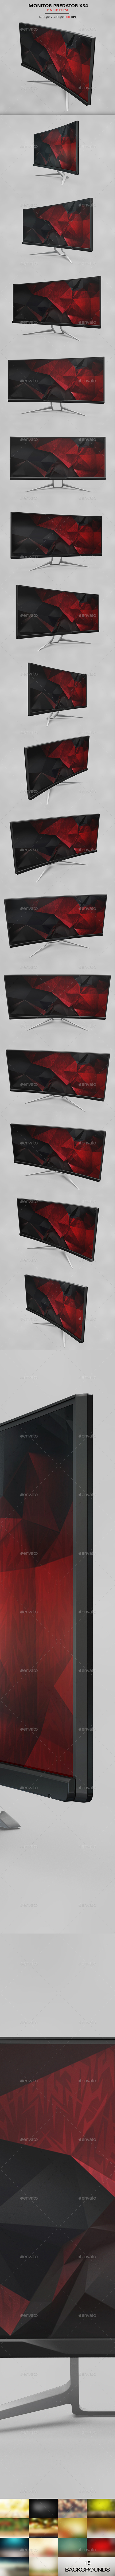 GraphicRiver Curved Gaming Monitor x 34 MockUp 20439375